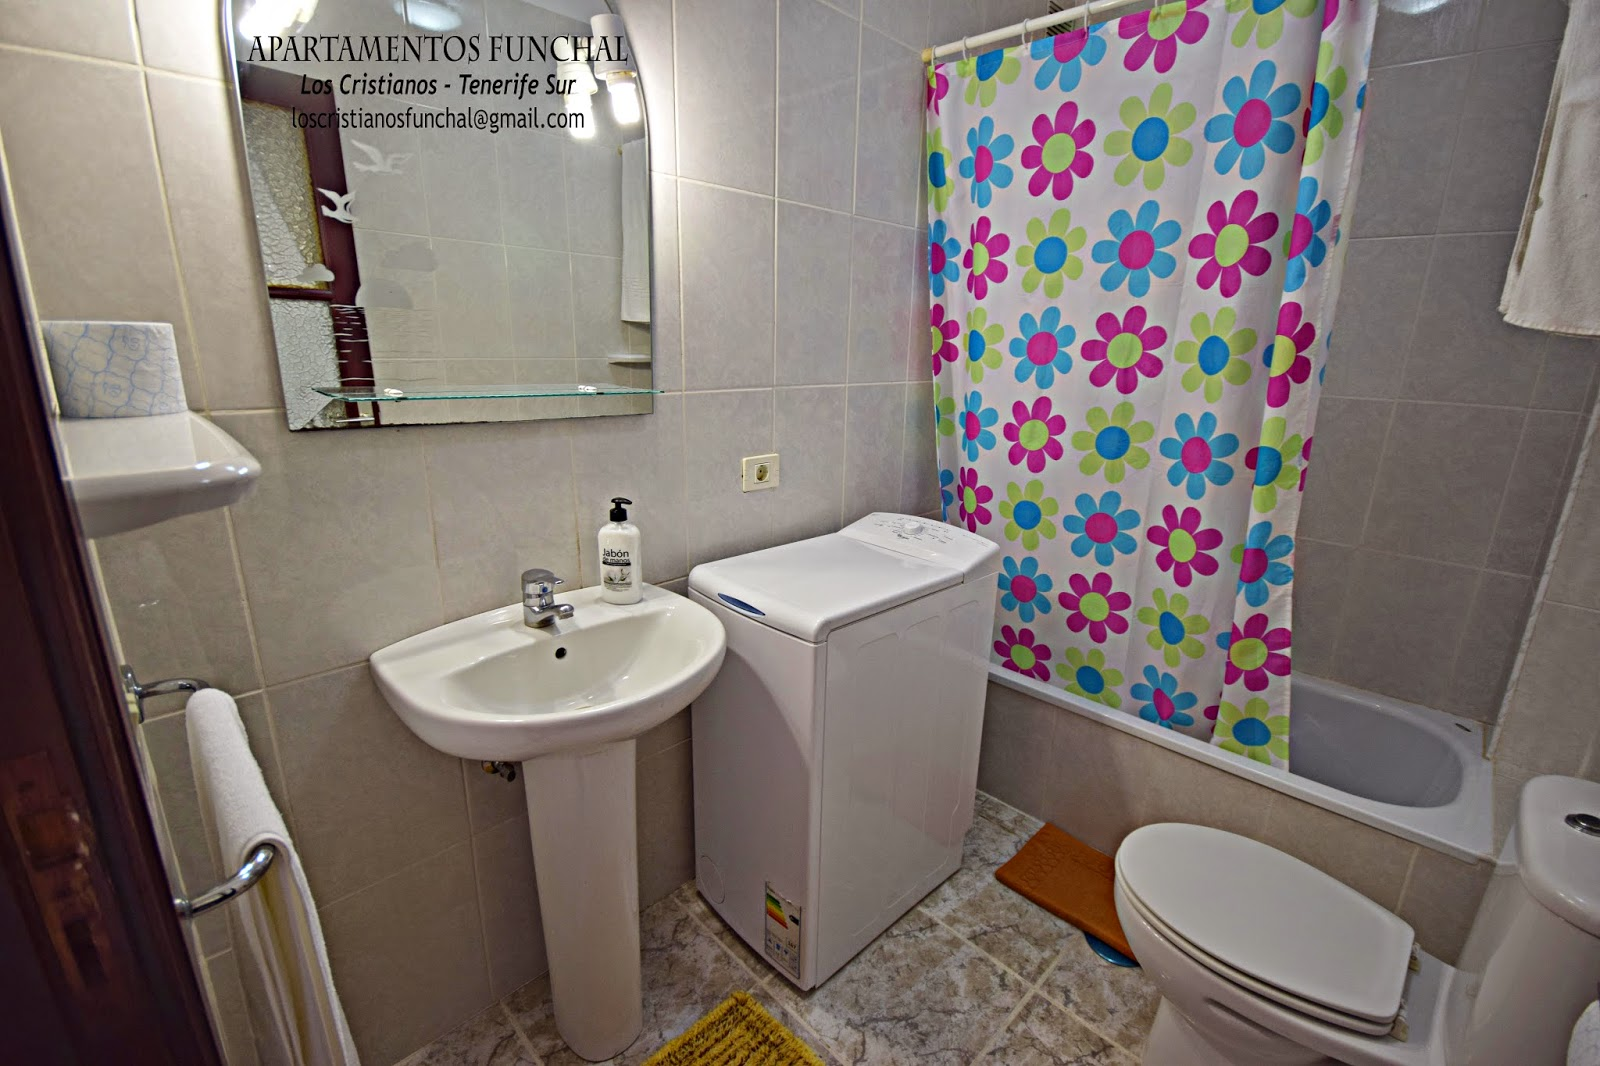 Funchal apartments los cristianos tenerife south 1 for Bedroom floor letra